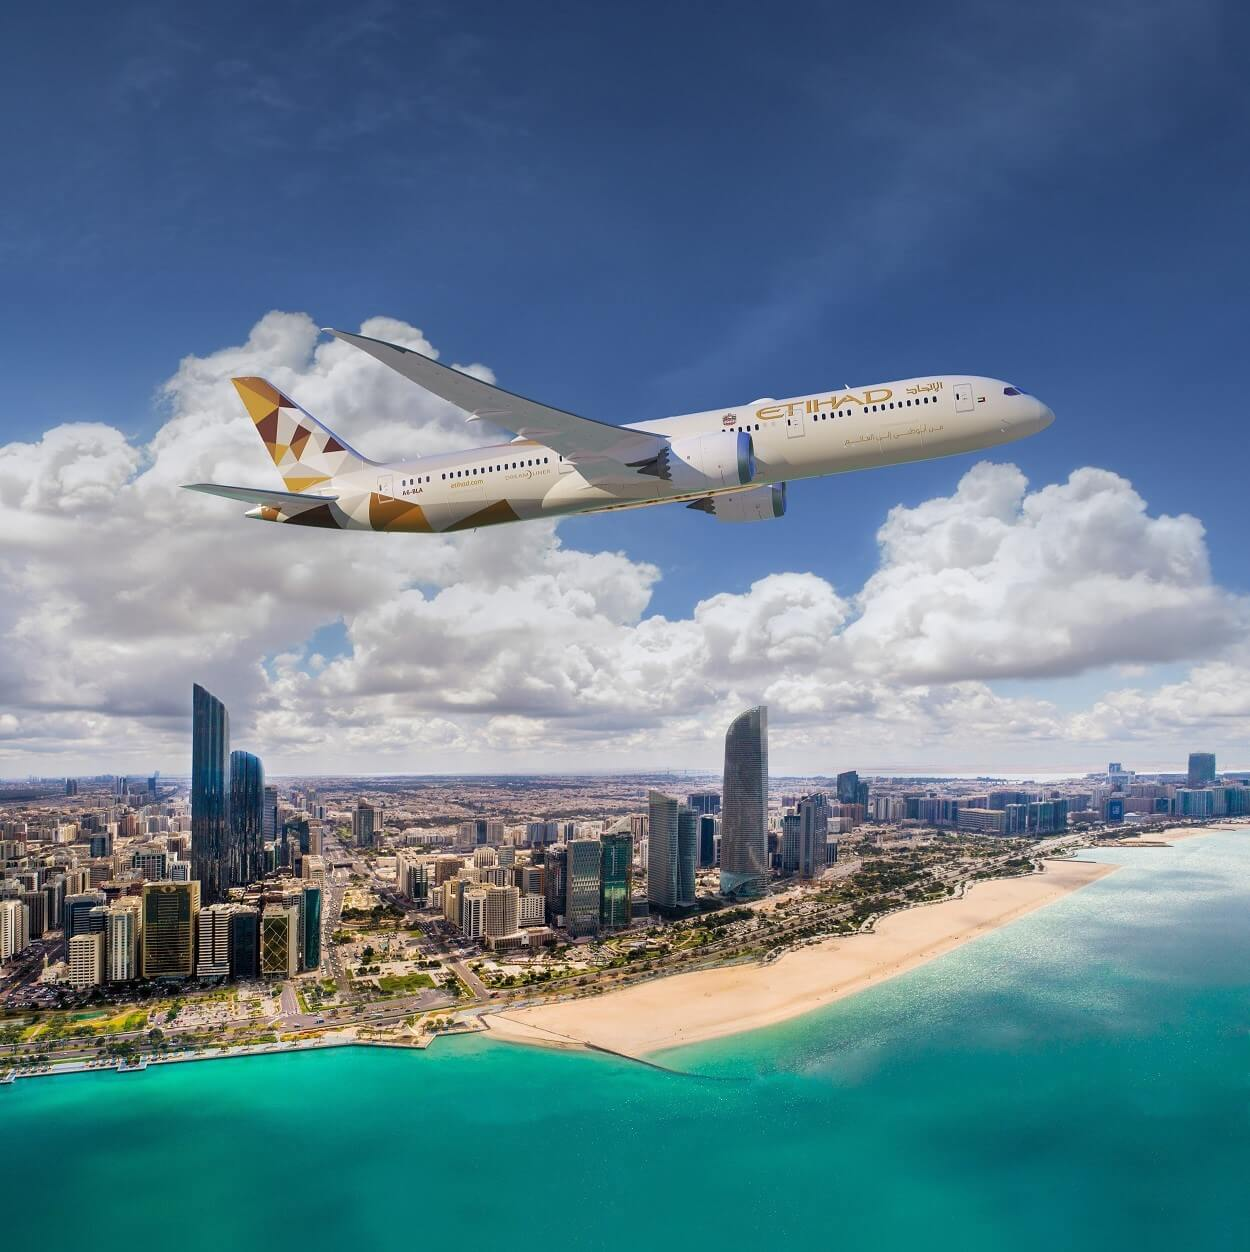 Etihad Airways refreshes loyalty program with rewards galore